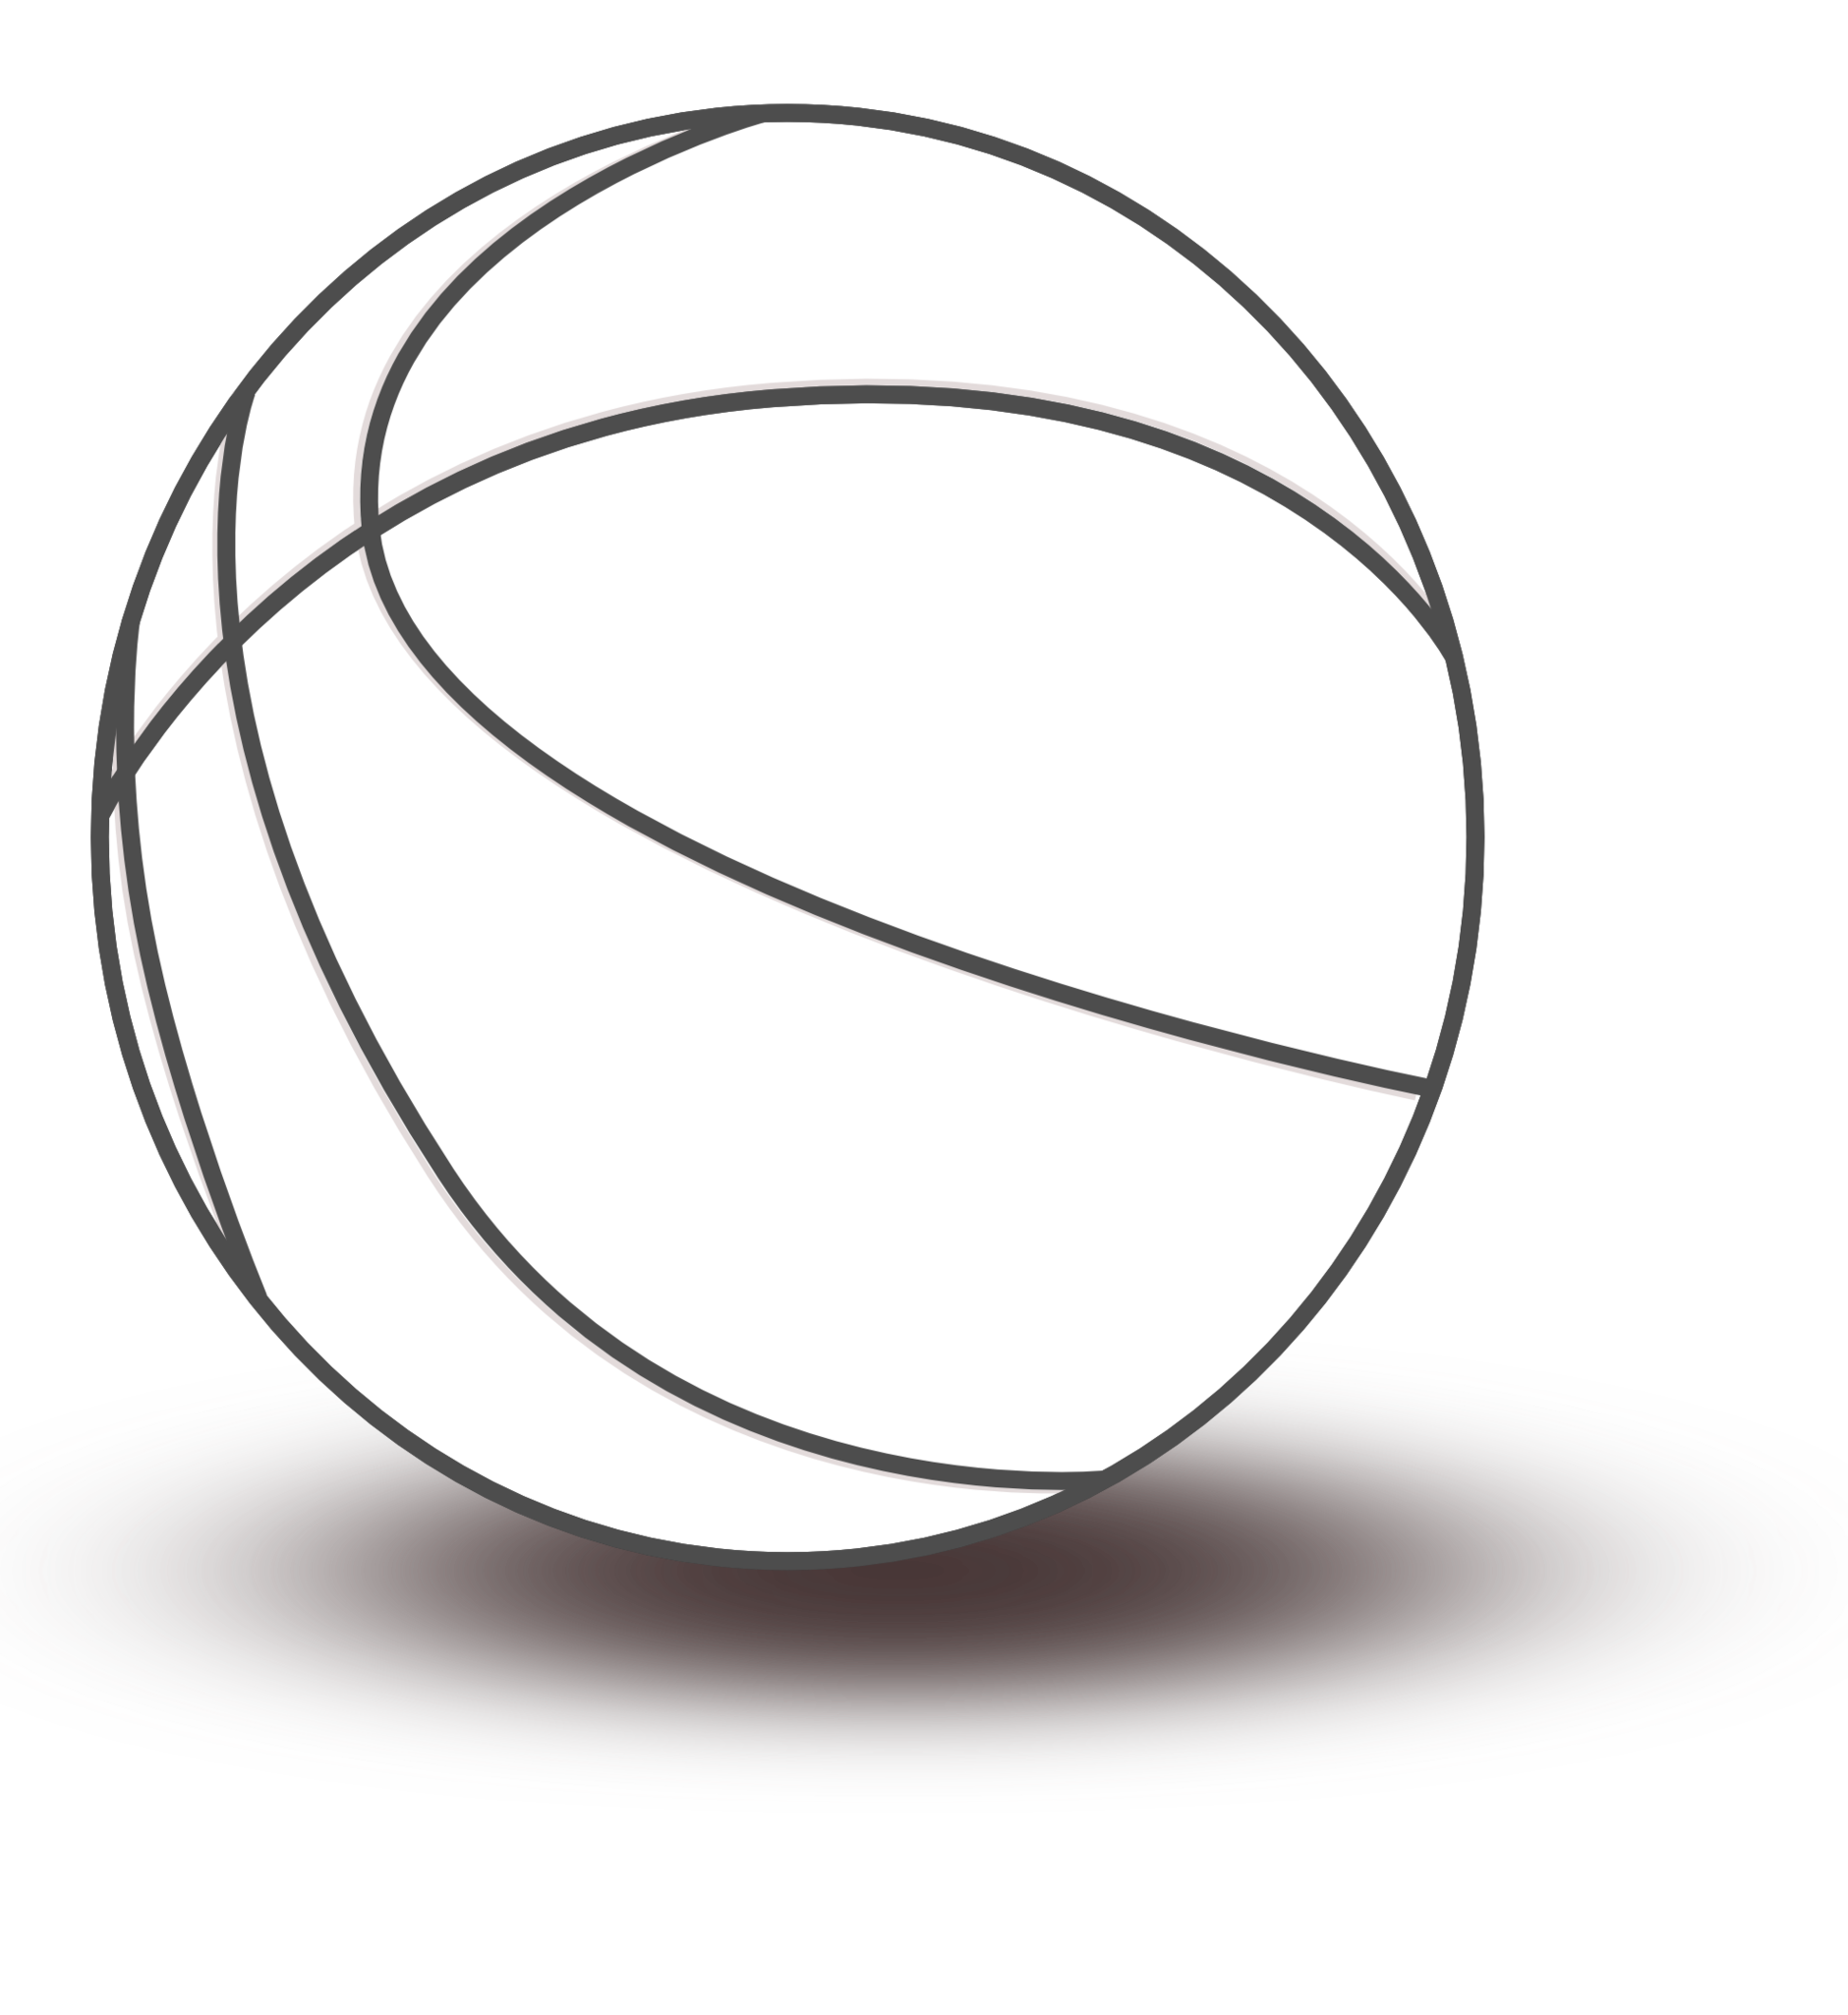 1880x2050 Basketball Clipart Black And White